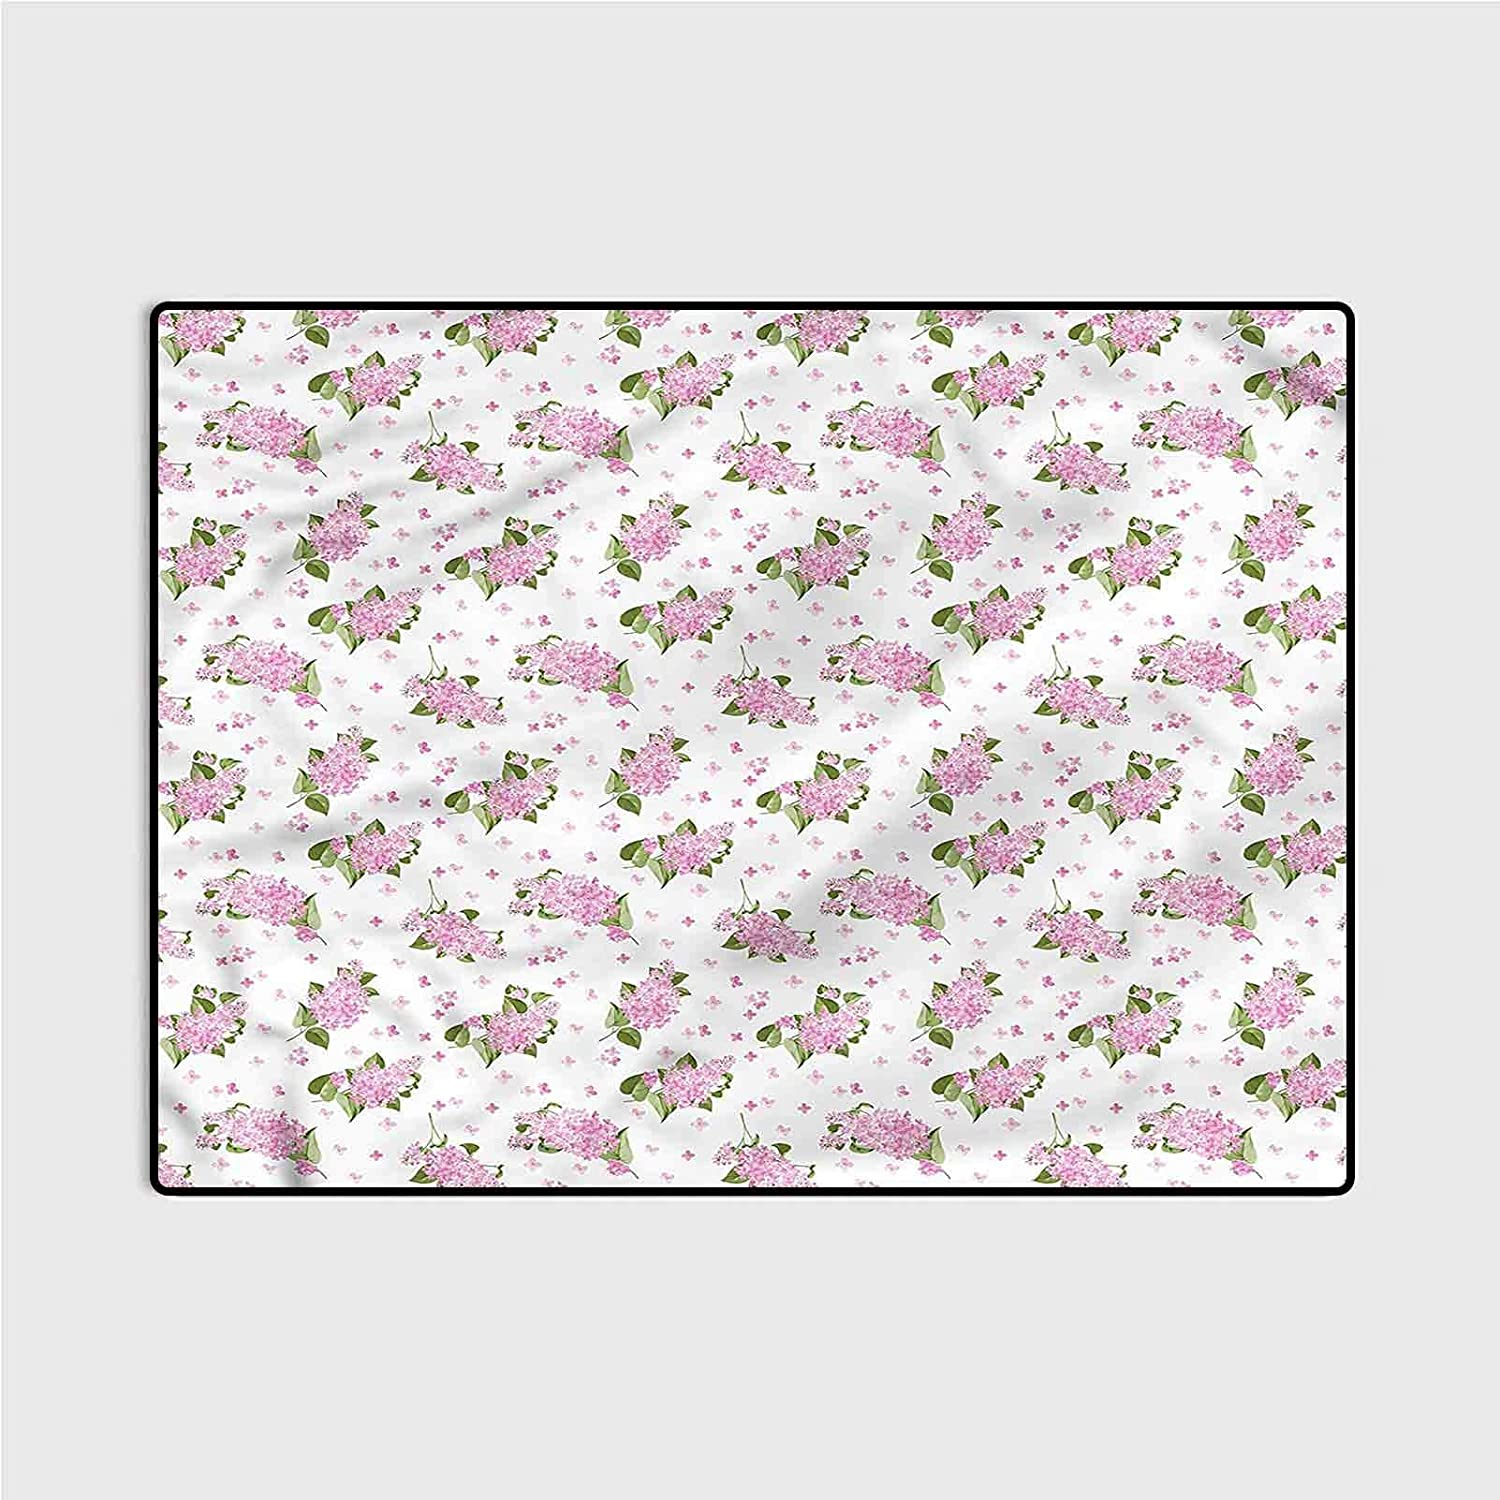 Outdoor Rugs for patios ! Super beauty product restock quality top! Kitchen Mauve Max 50% OFF mats Patt Flowers and